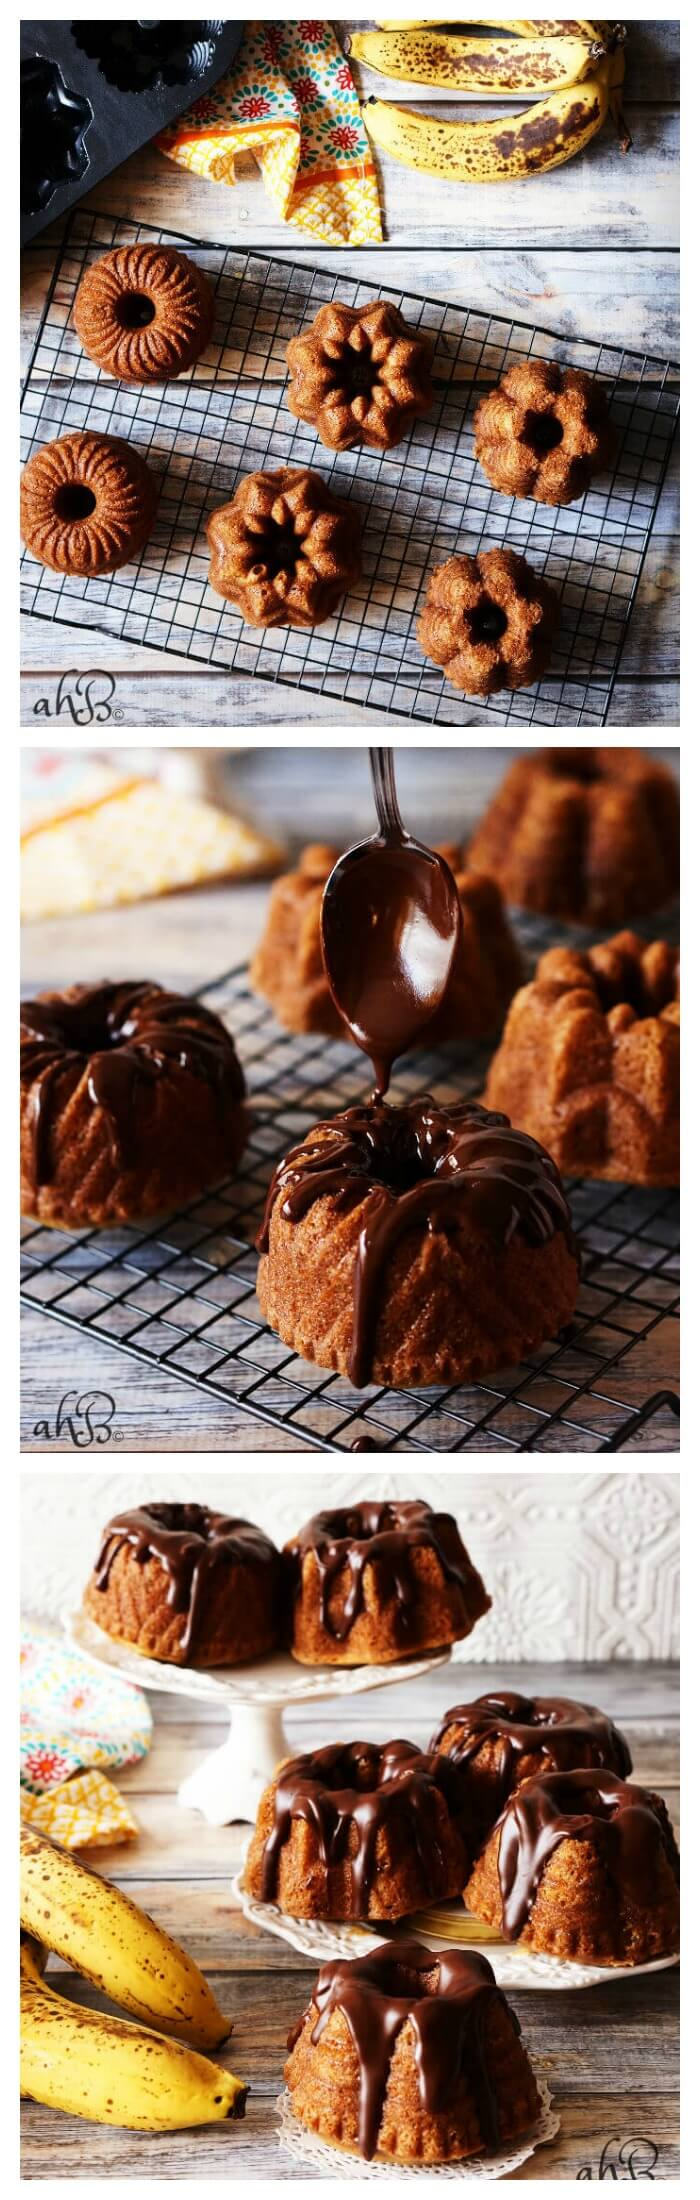 Mini Banana Bundt Cakes with Chocolate Nutella Ganache